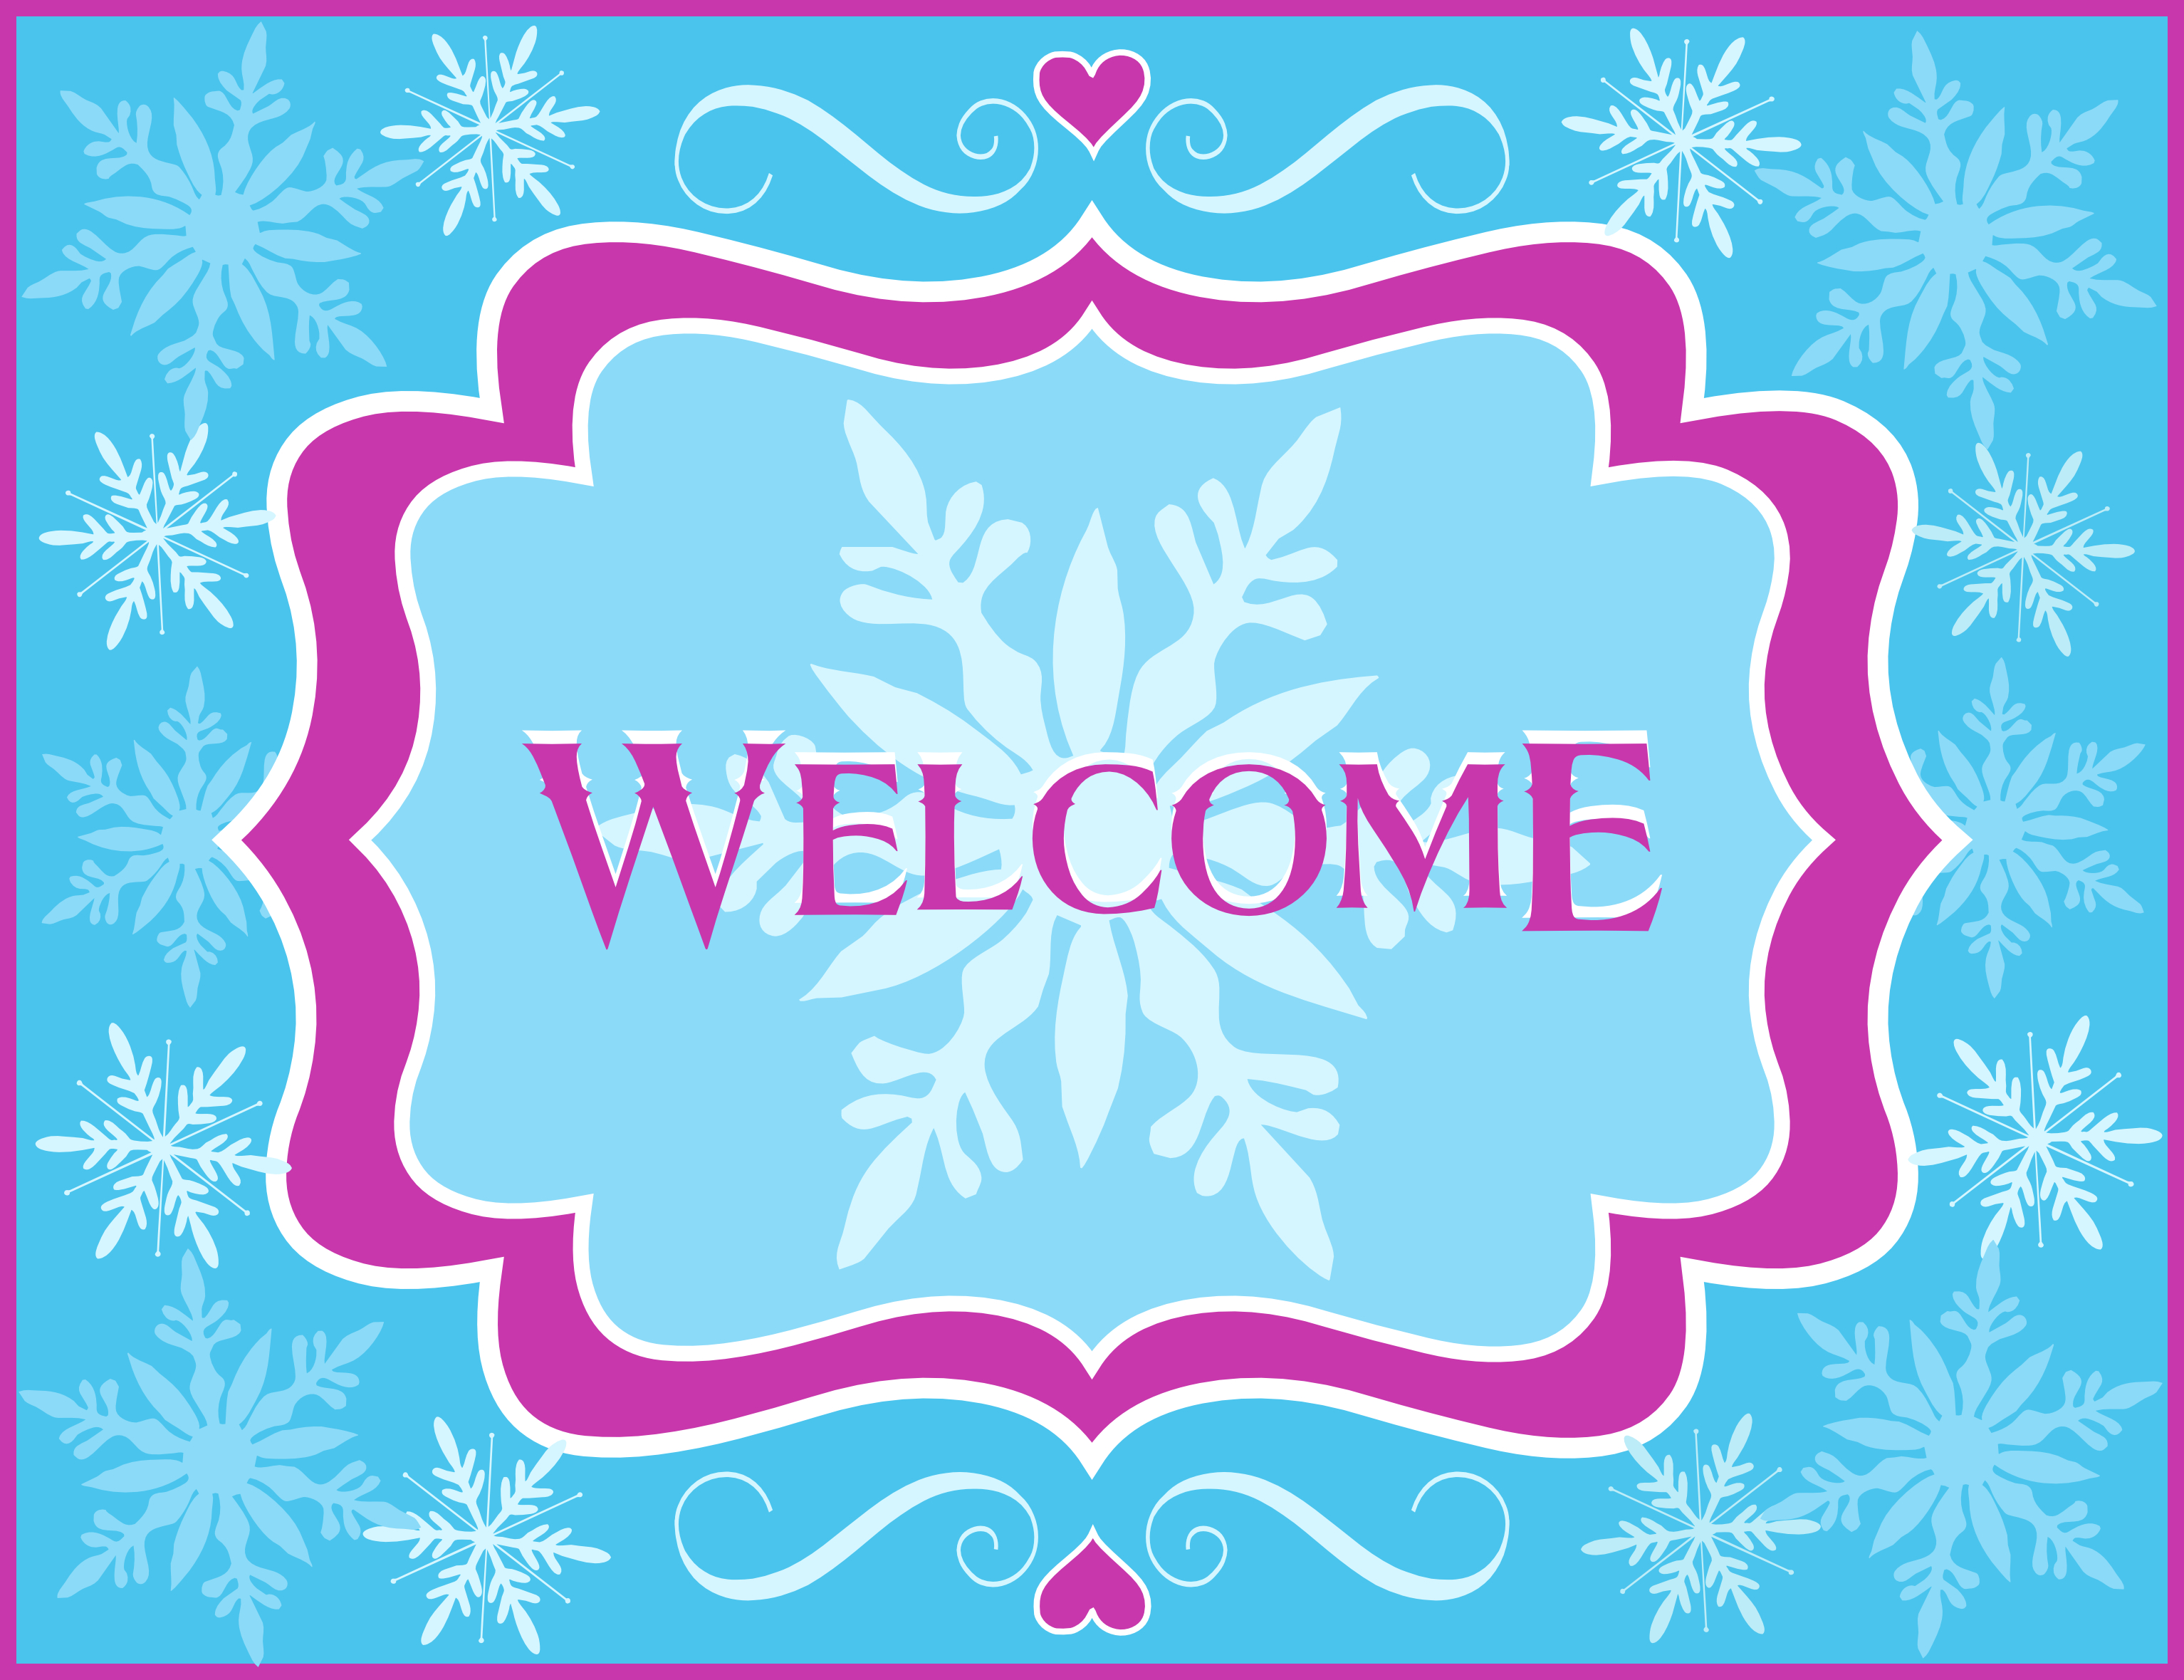 Free Frozen Party Printables From Printabelle   Catch My Party - Free Printable Welcome Cards